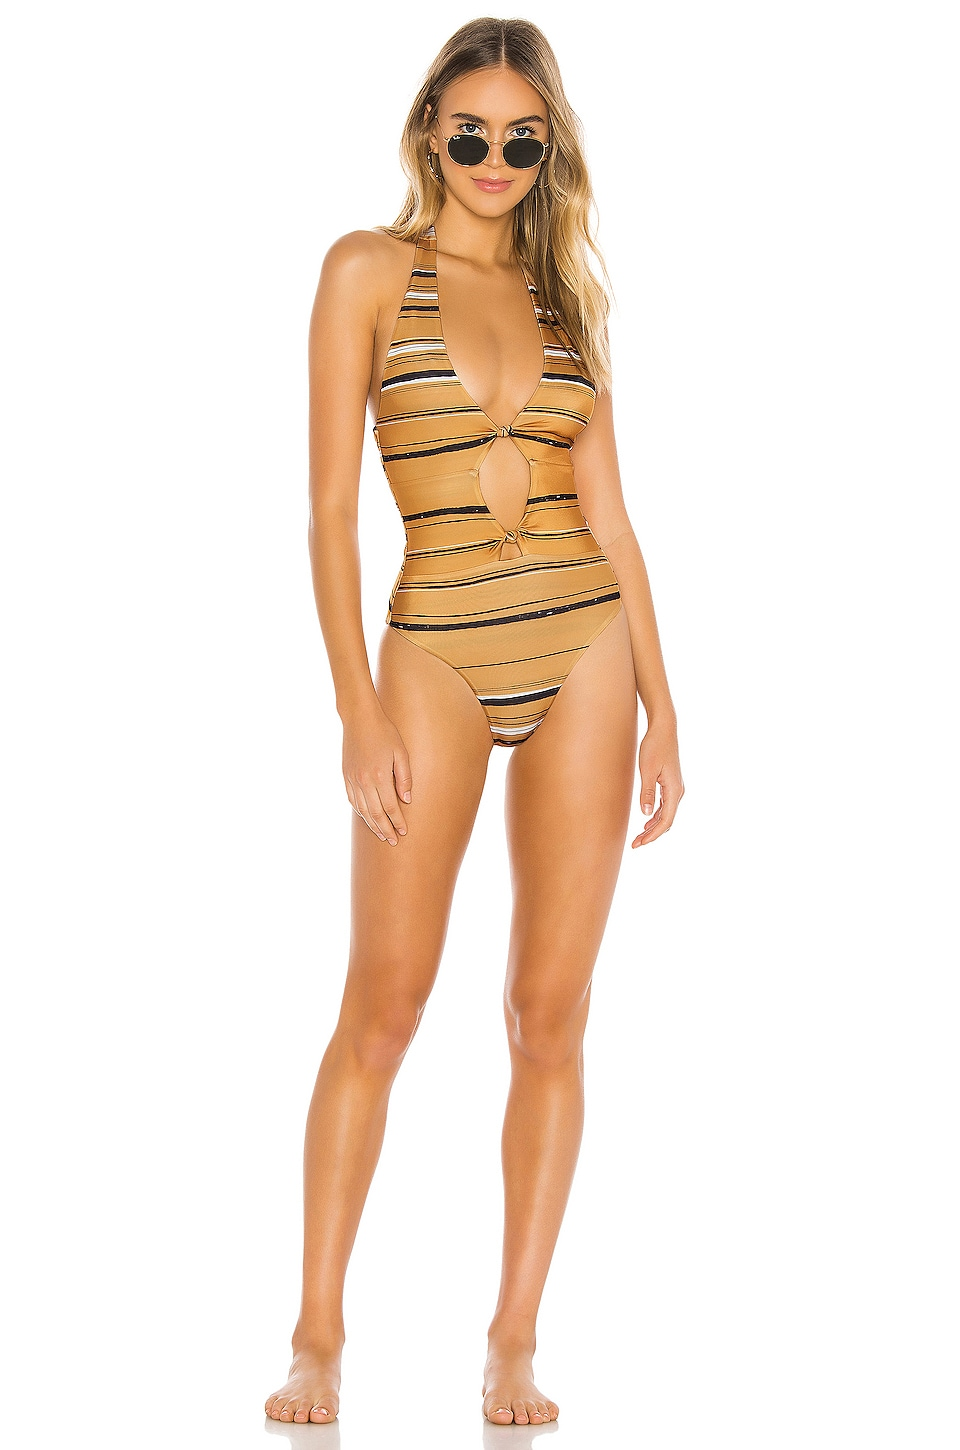 House of Harlow 1960 X REVOLVE Nelly One Piece in Midas Stripe